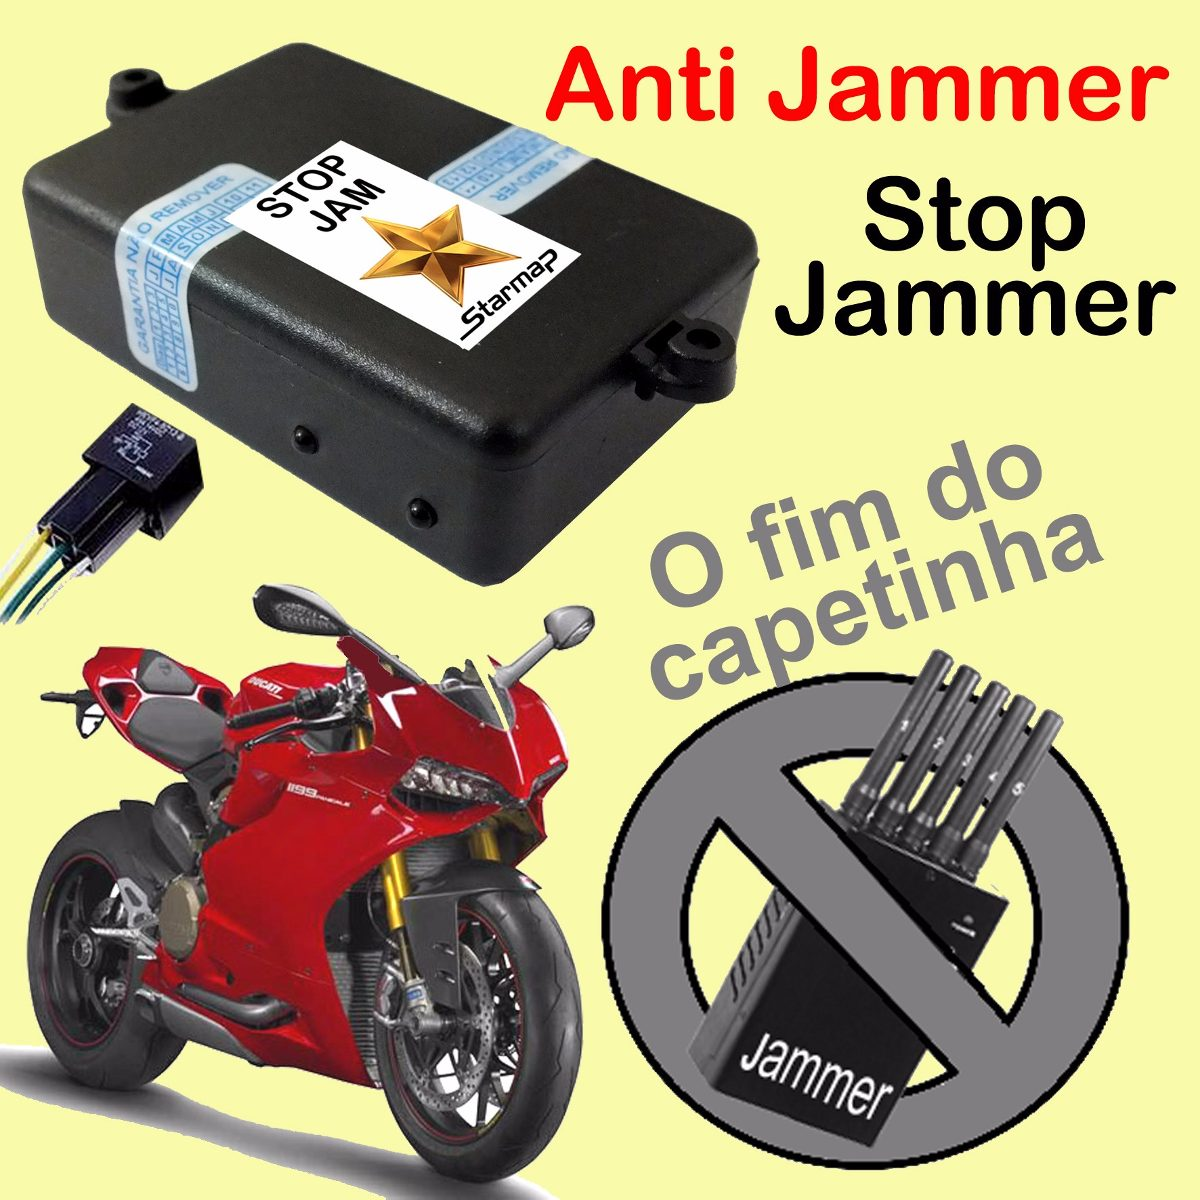 Anti jammers | jammers blockers review quiz